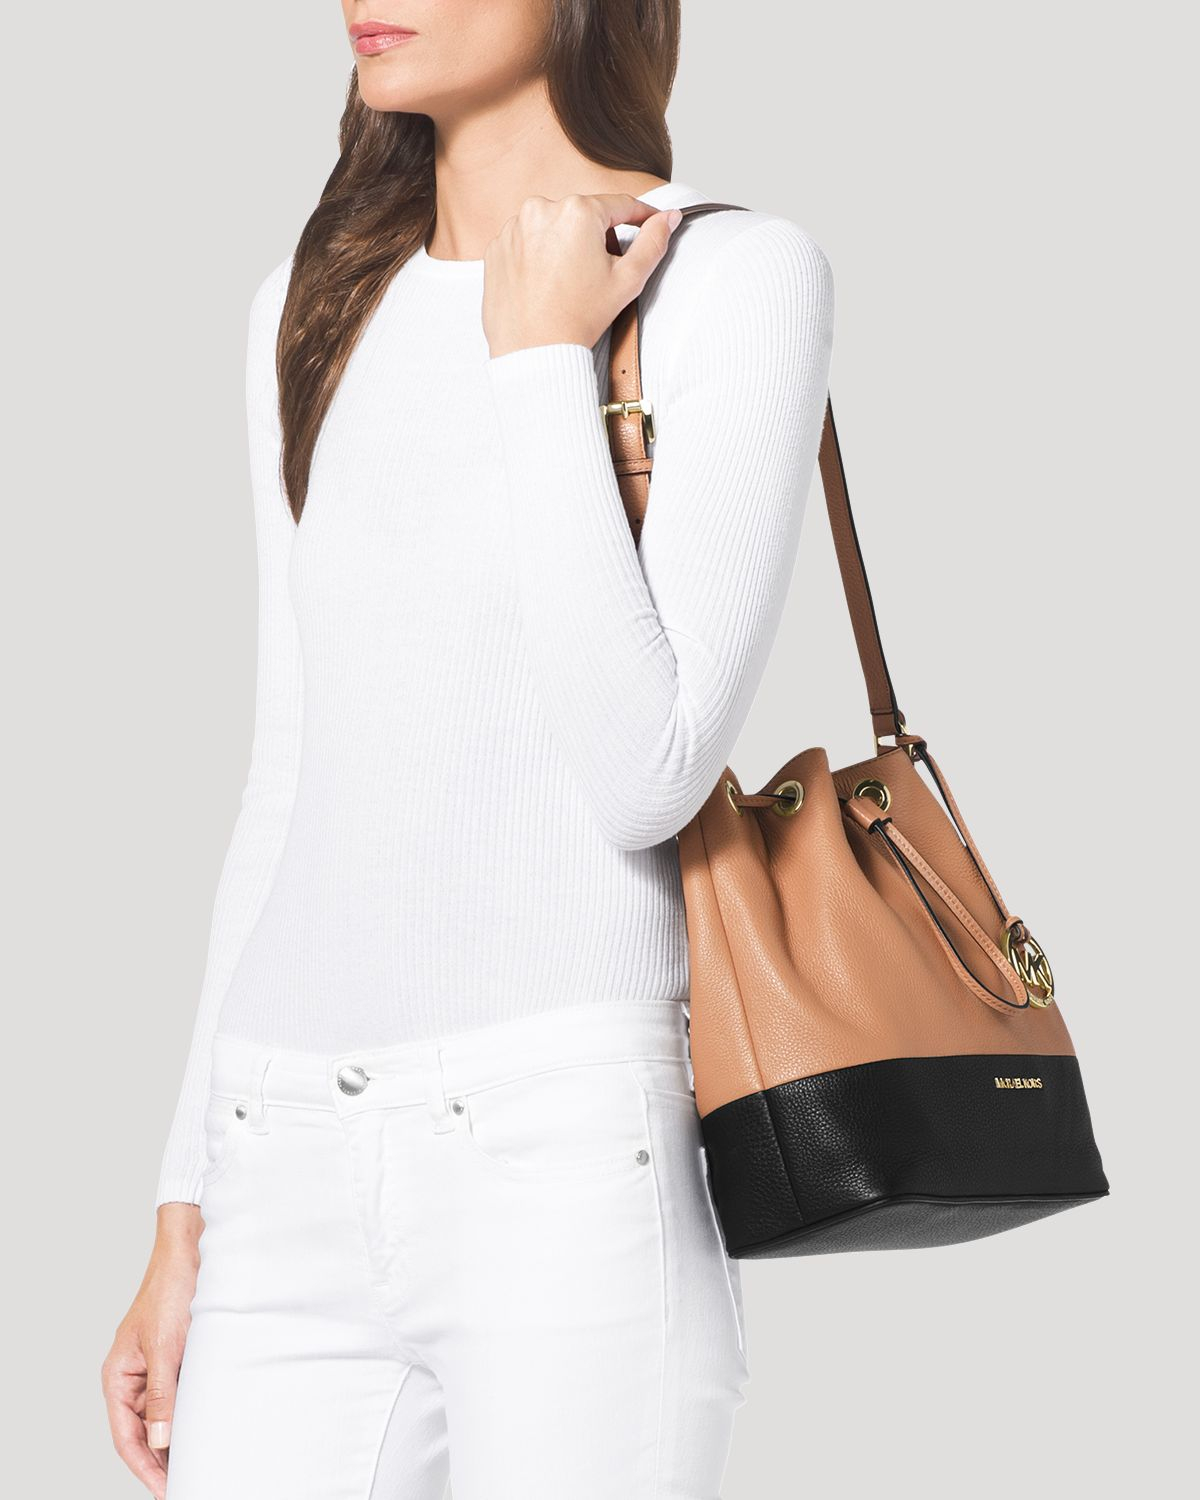 f7834aff29682b Gallery. Previously sold at: Bloomingdale's · Women's Michael Kors Jules ...